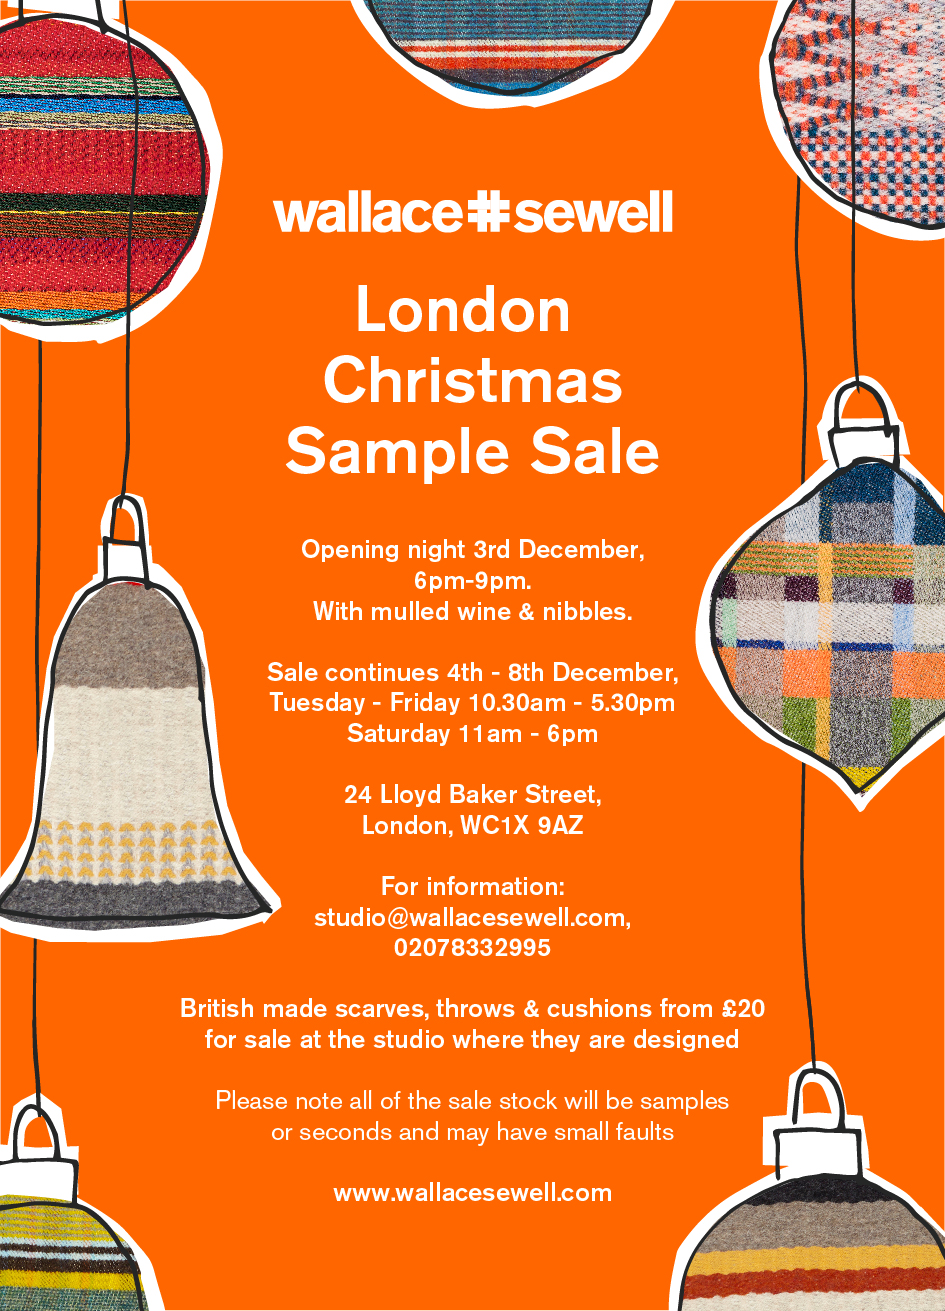 London Christmas Sample Sale